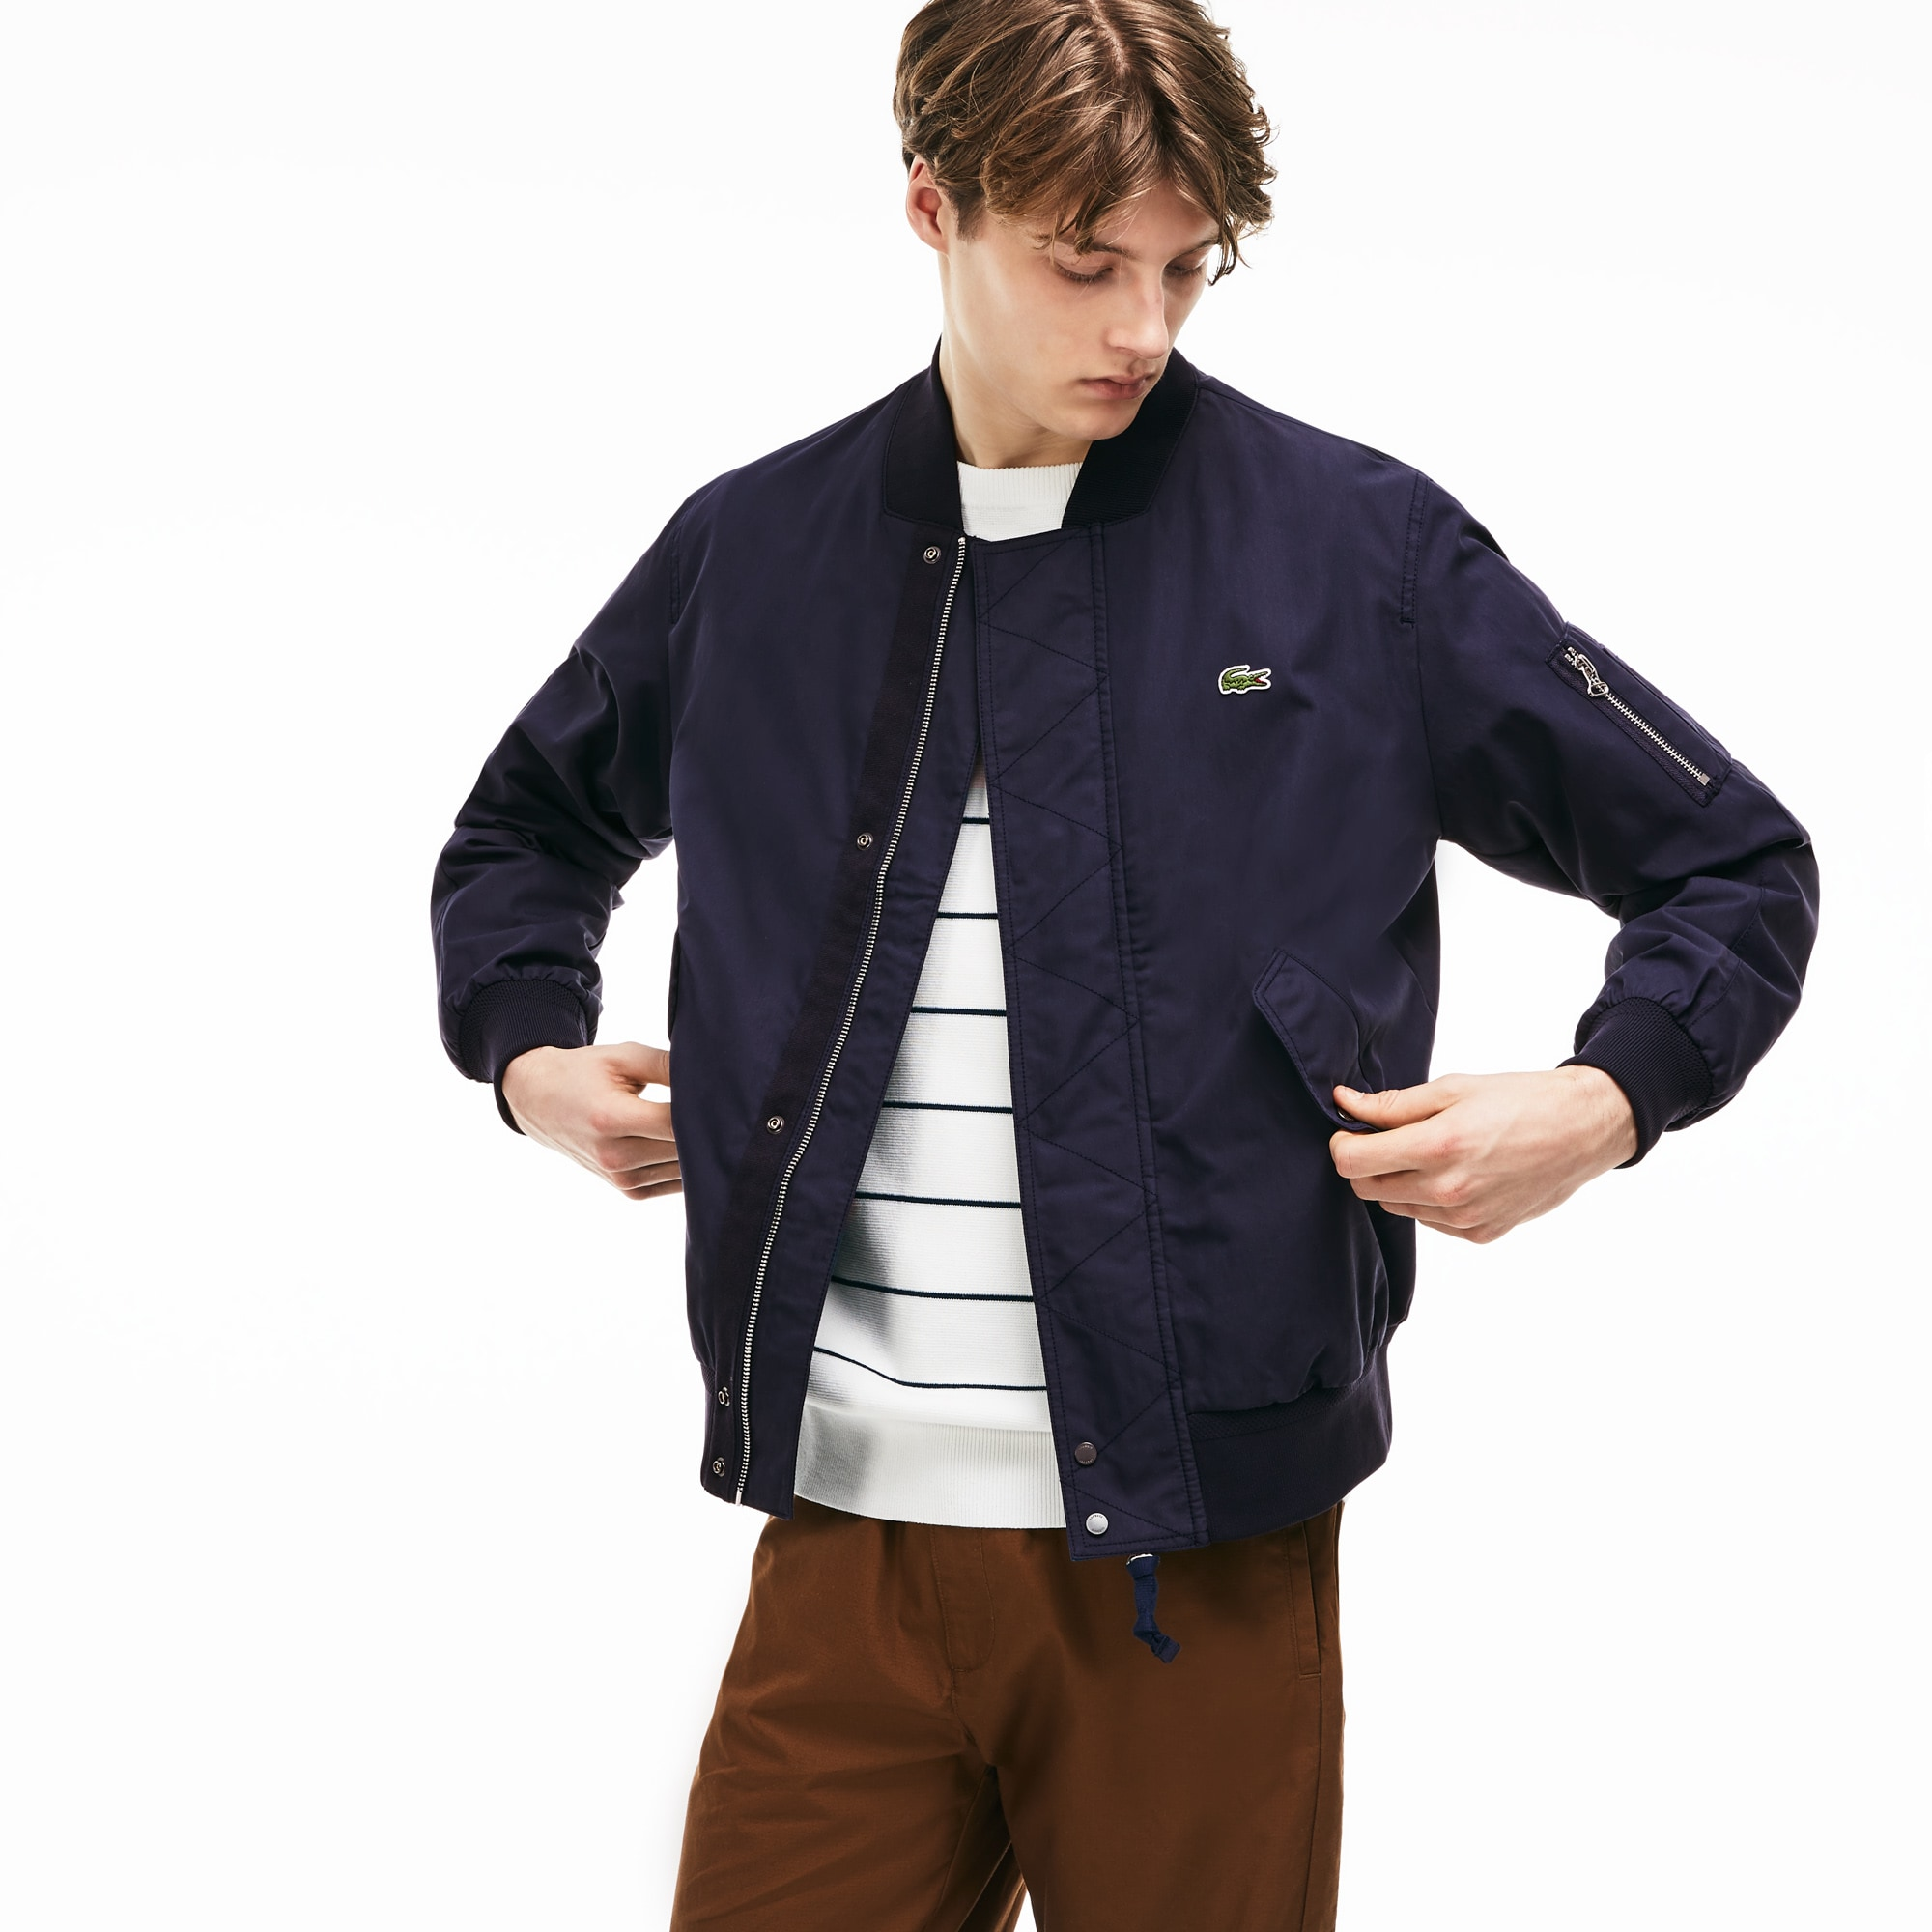 Men's Lightweight Texturized Bomber